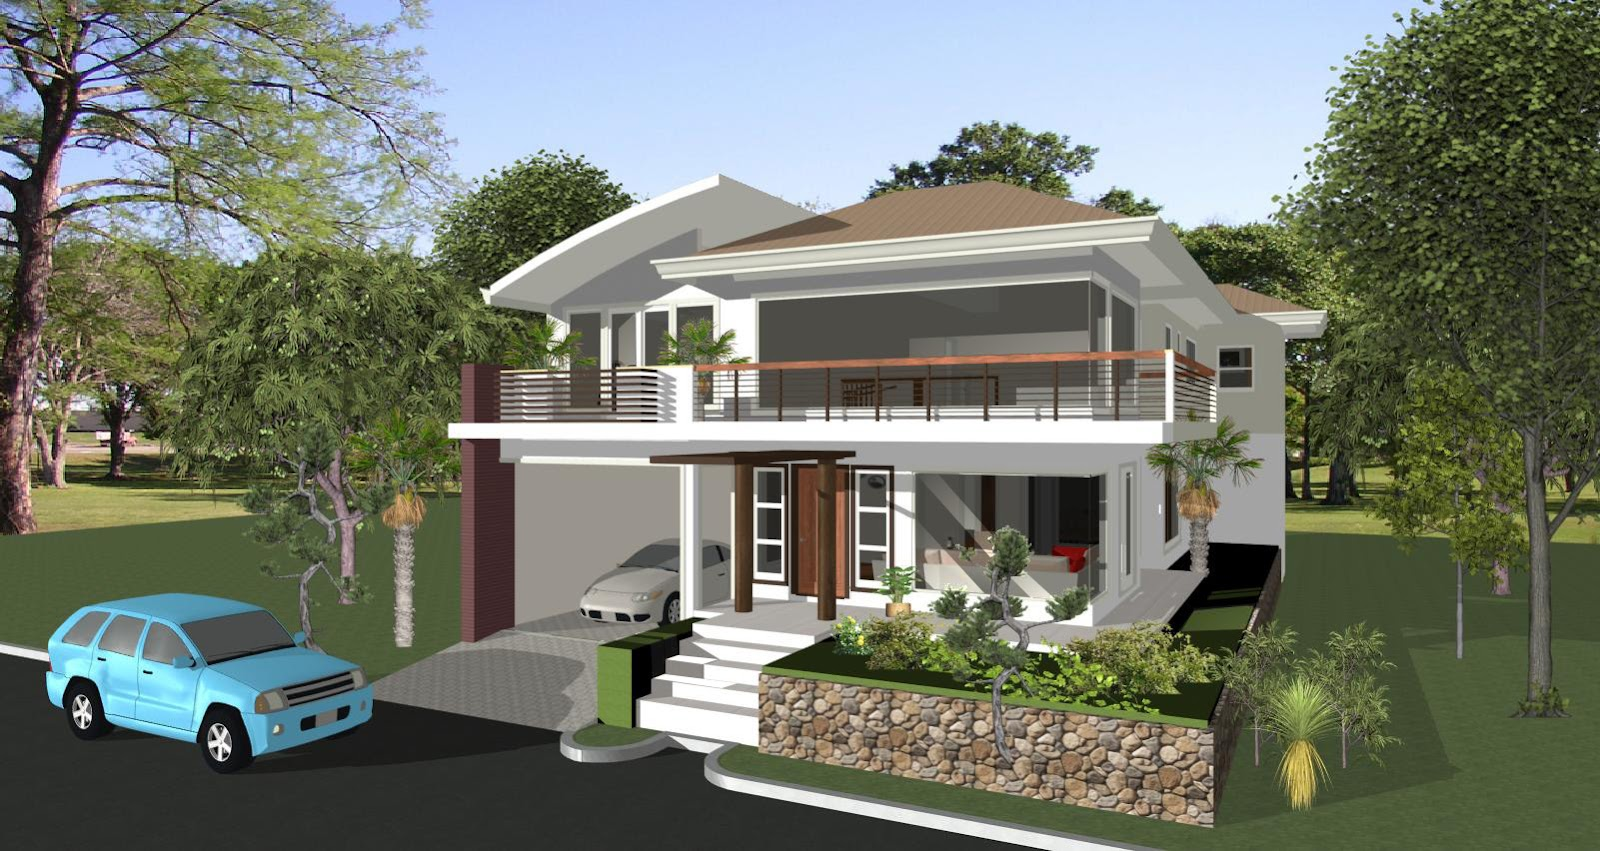 House designs in the philippines in iloilo by erecre group realty design and construction House plans and designs